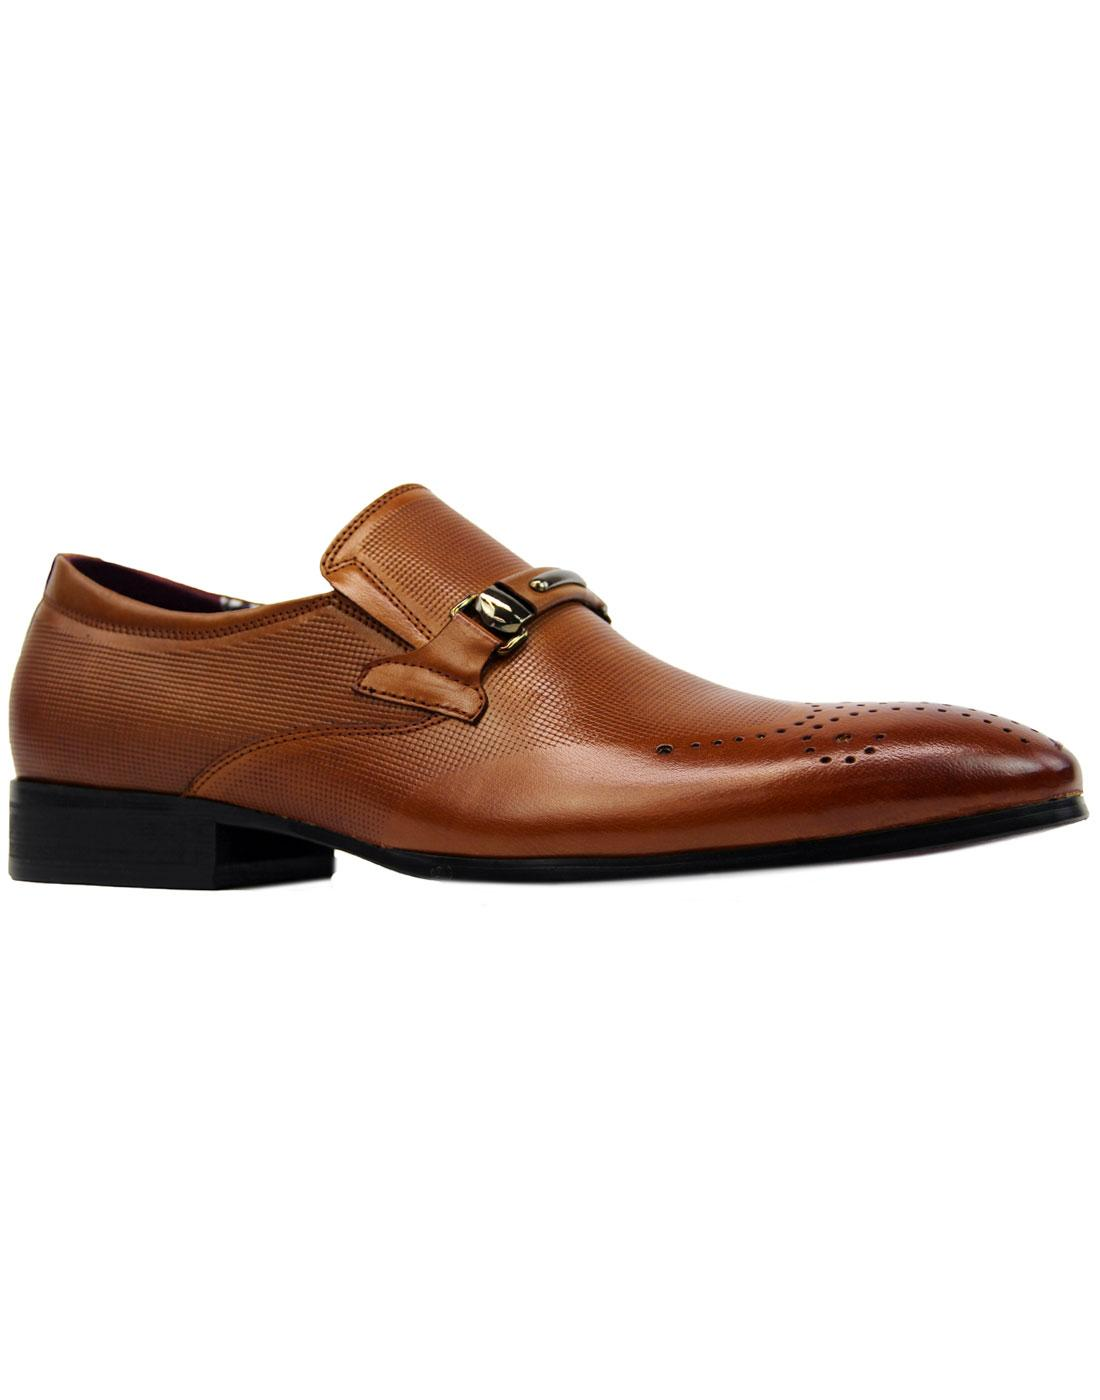 Sarell PAOLO VANDINI Scotch Grain Buckle Loafers T